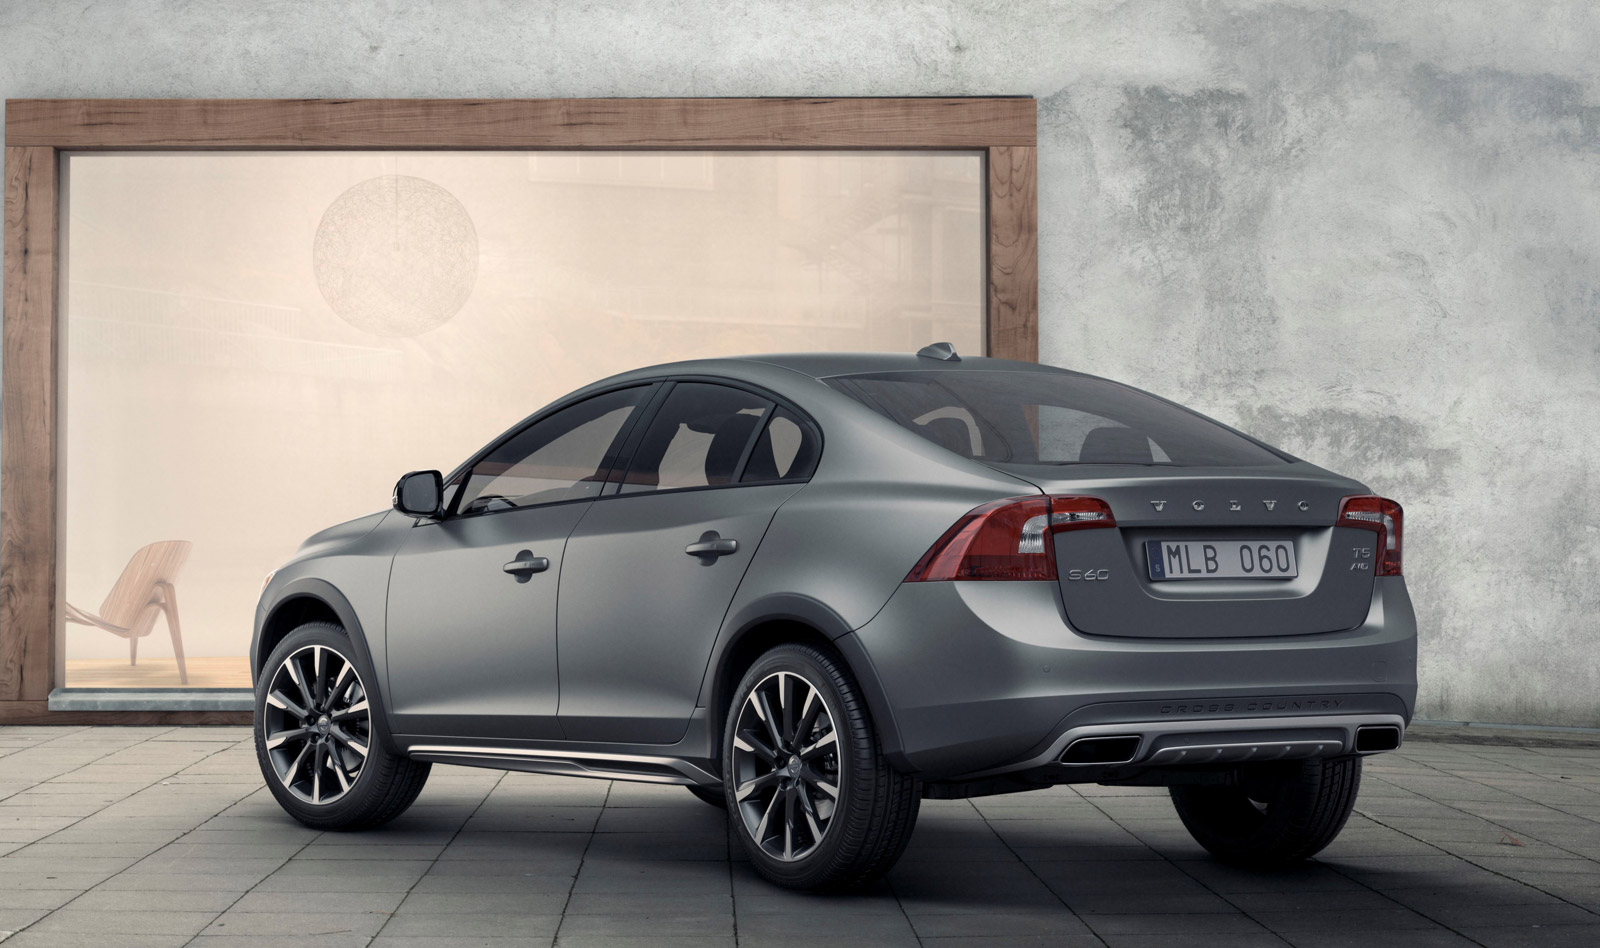 Volvo volvo coupe 2015 : Mercedes-AMG GLE63 Coupe, Volvo S60 Cross Country, Cadillac Drops ...